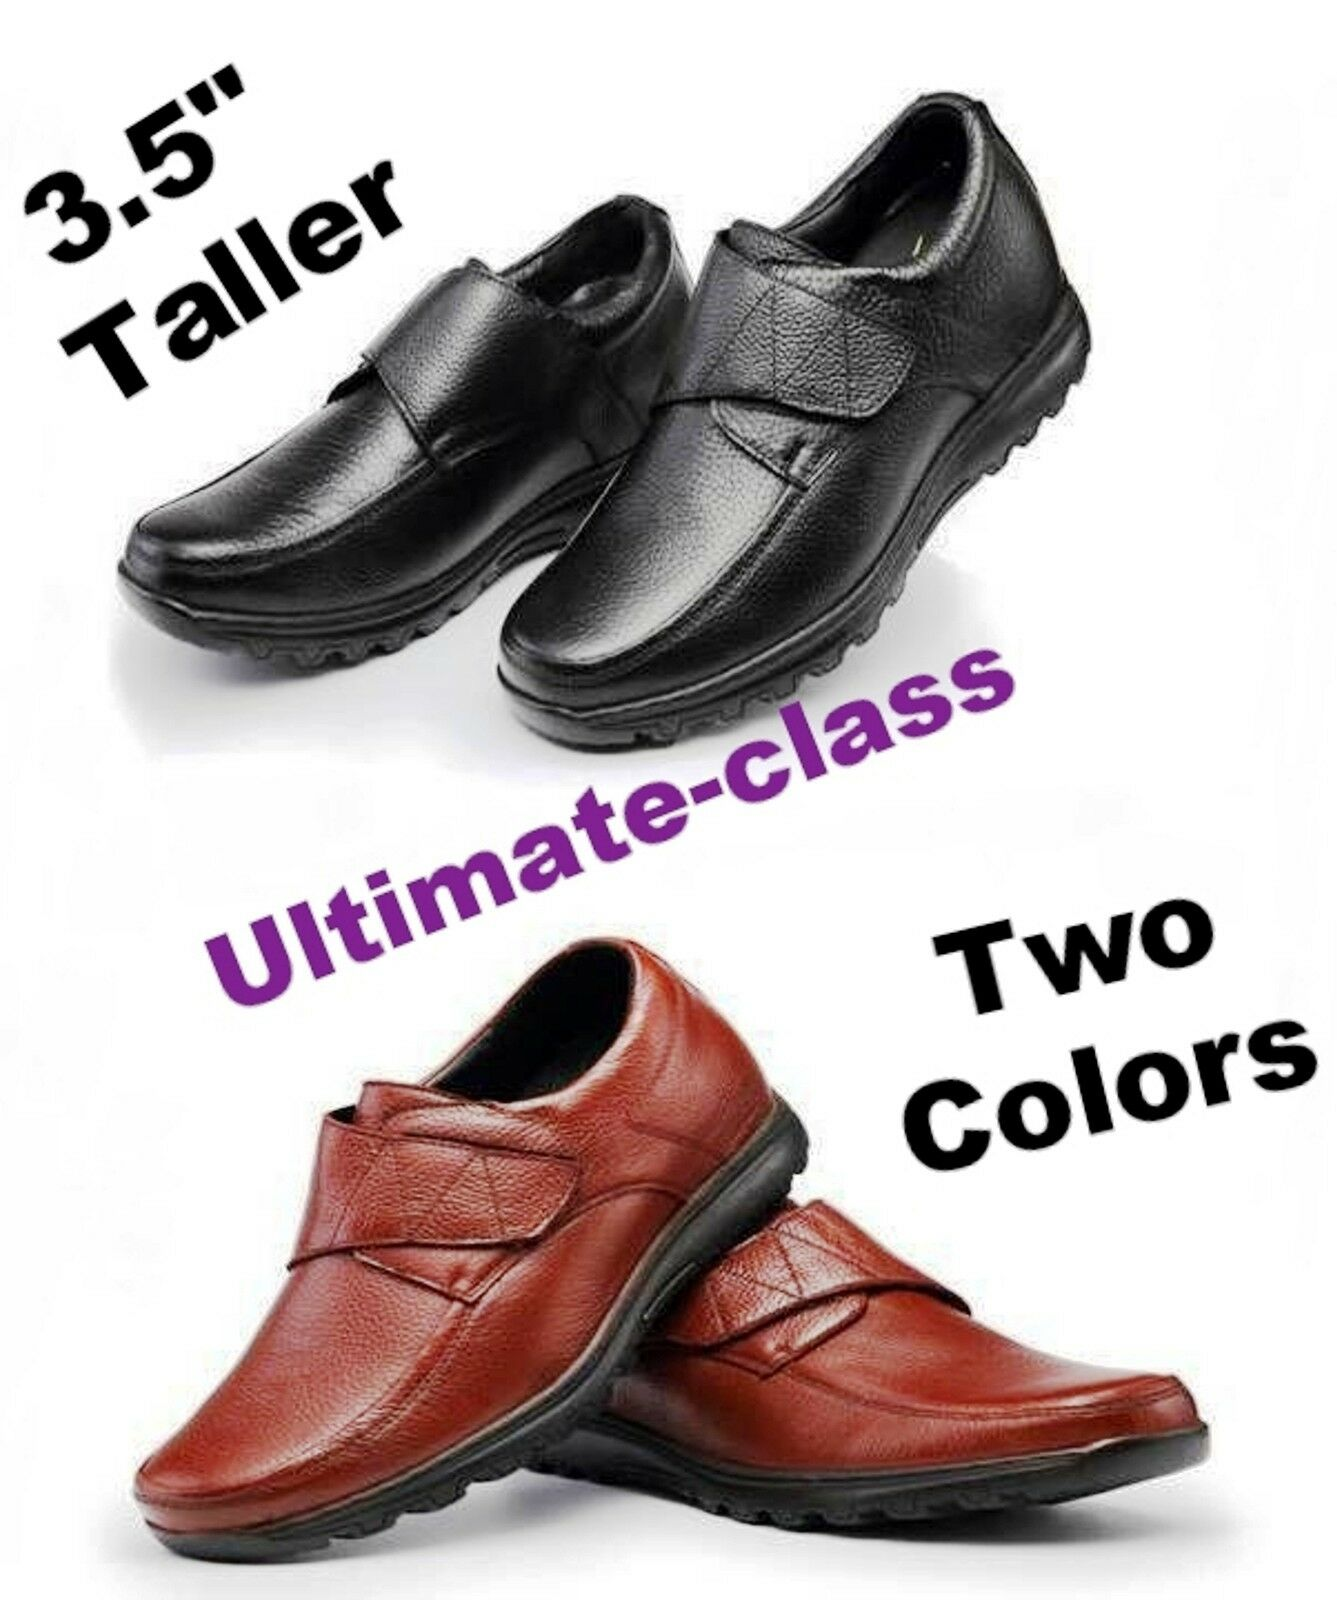 """Super 3.5"""" Uomo Elevator Height increasing Casual Dress shoes size 8 8.5 9 9.5"""